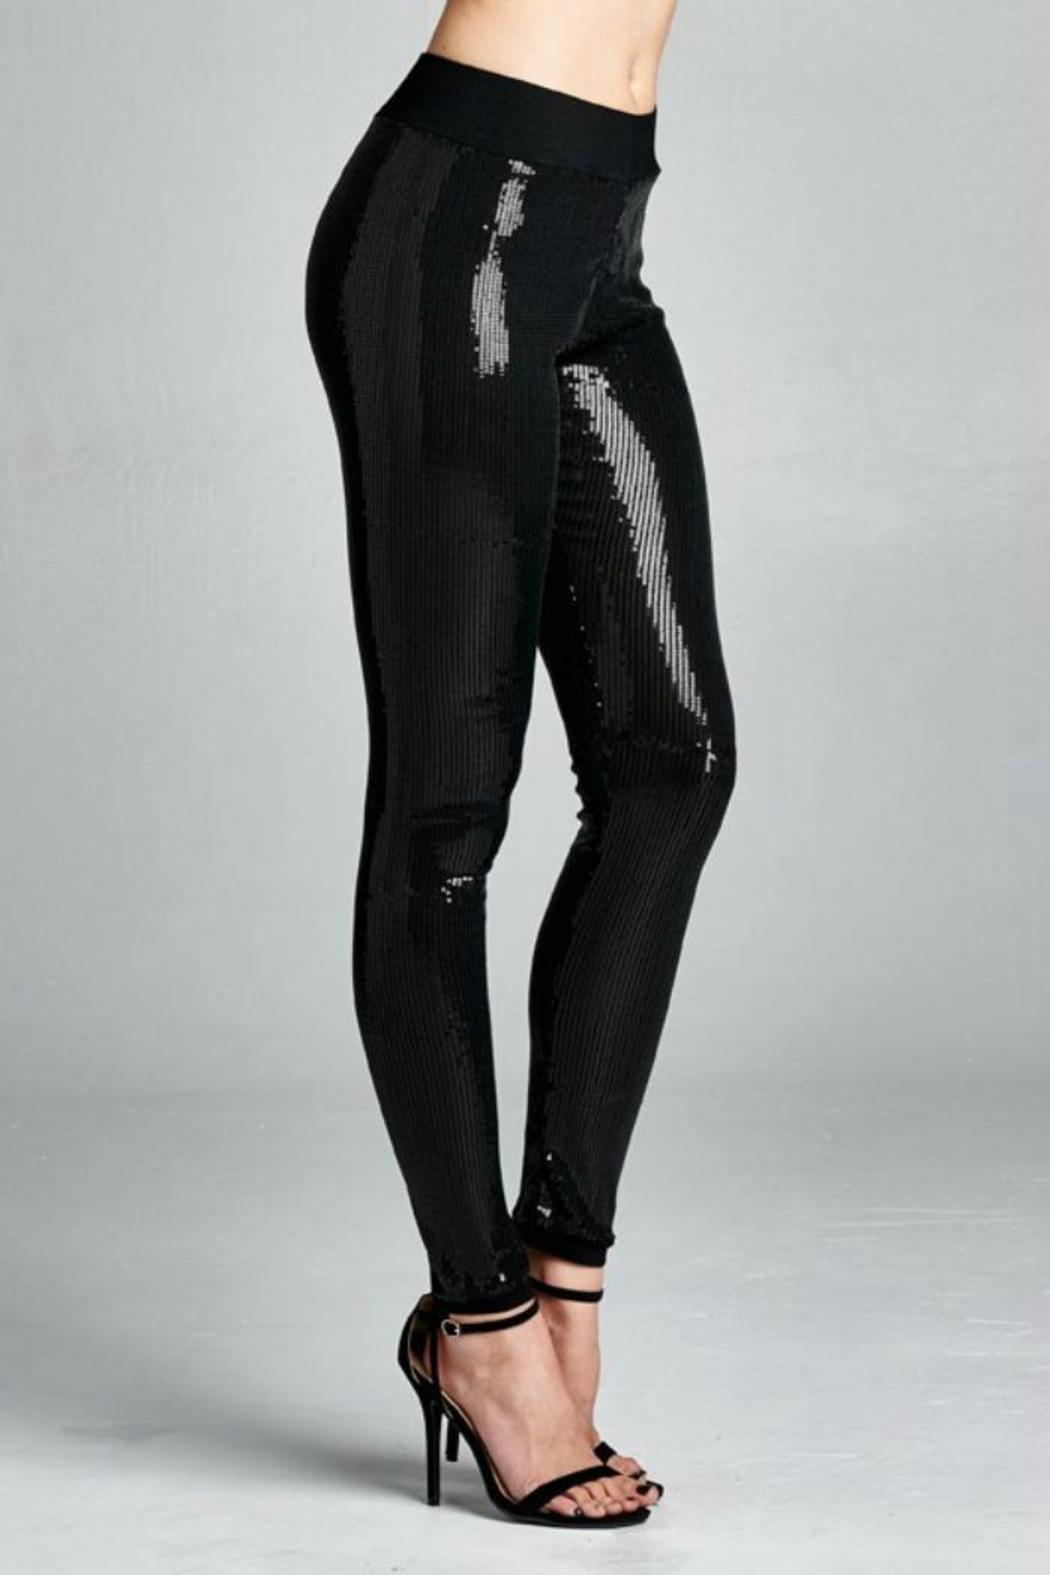 Cherish Sequin Leggings From Texas By Chili Peppers